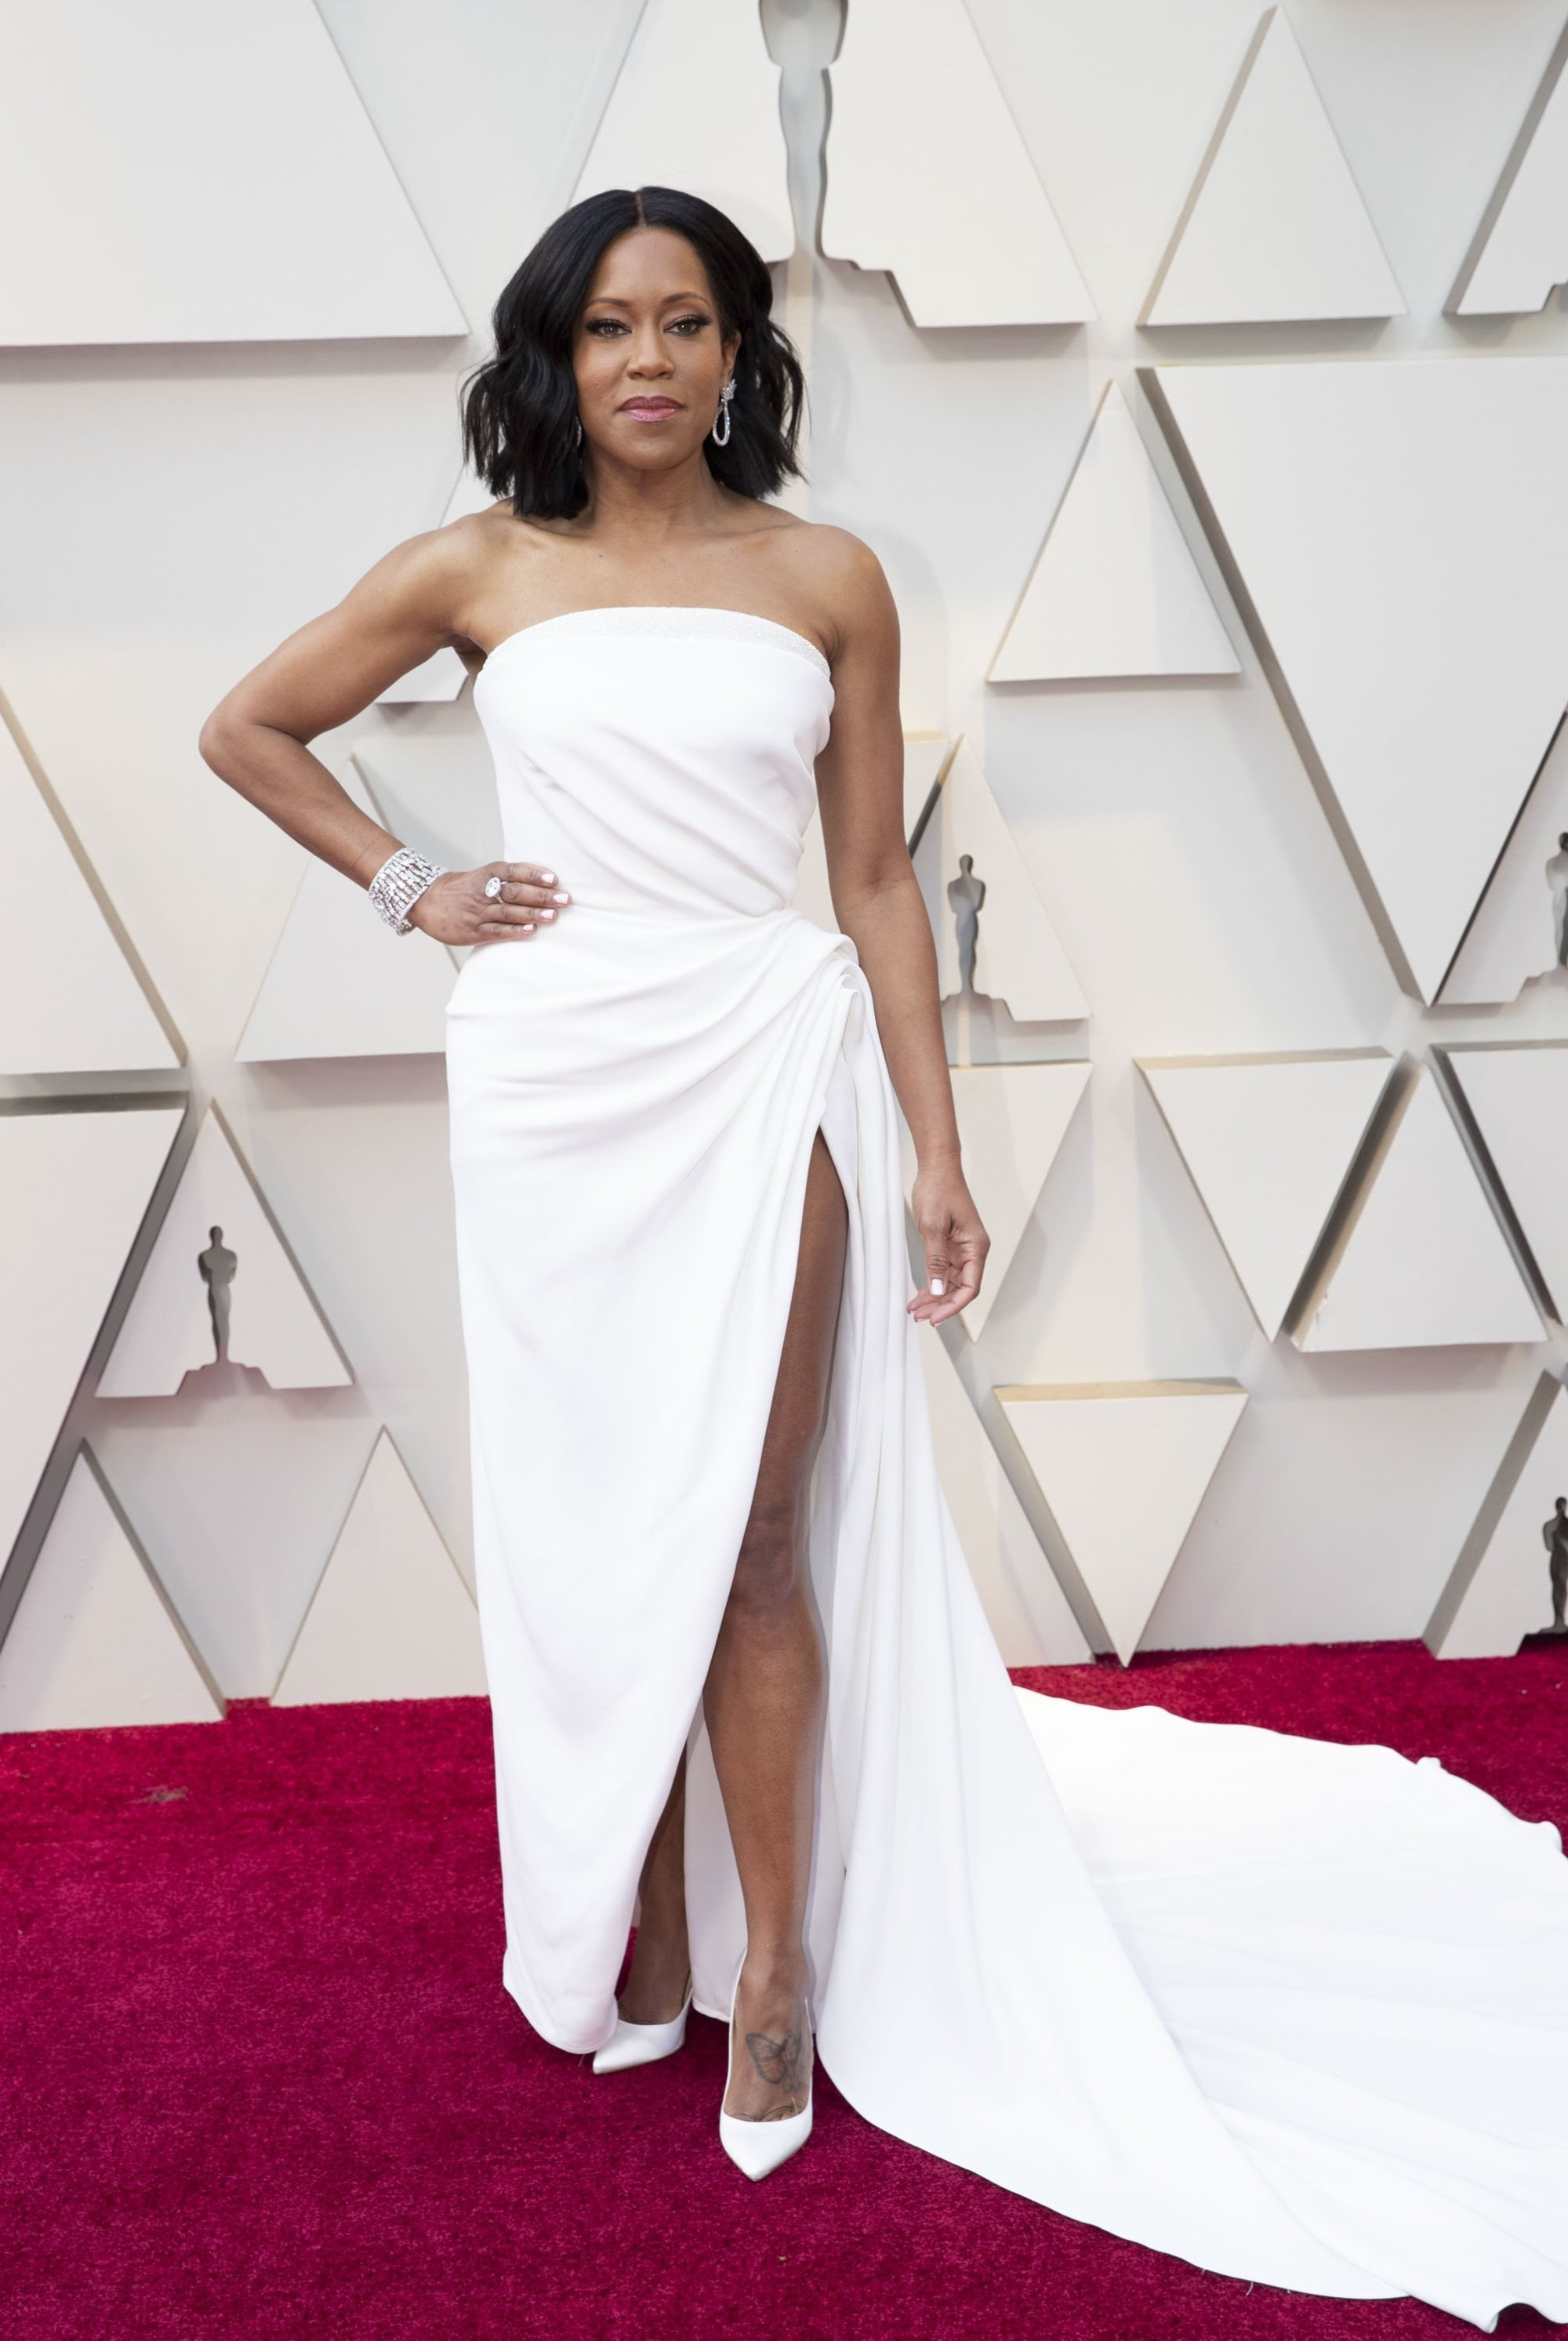 Regina King: Red Carpet from the The 91st Oscar broadcast on Sunday, Feb. 24, 2019, at the Dolby Theatre.